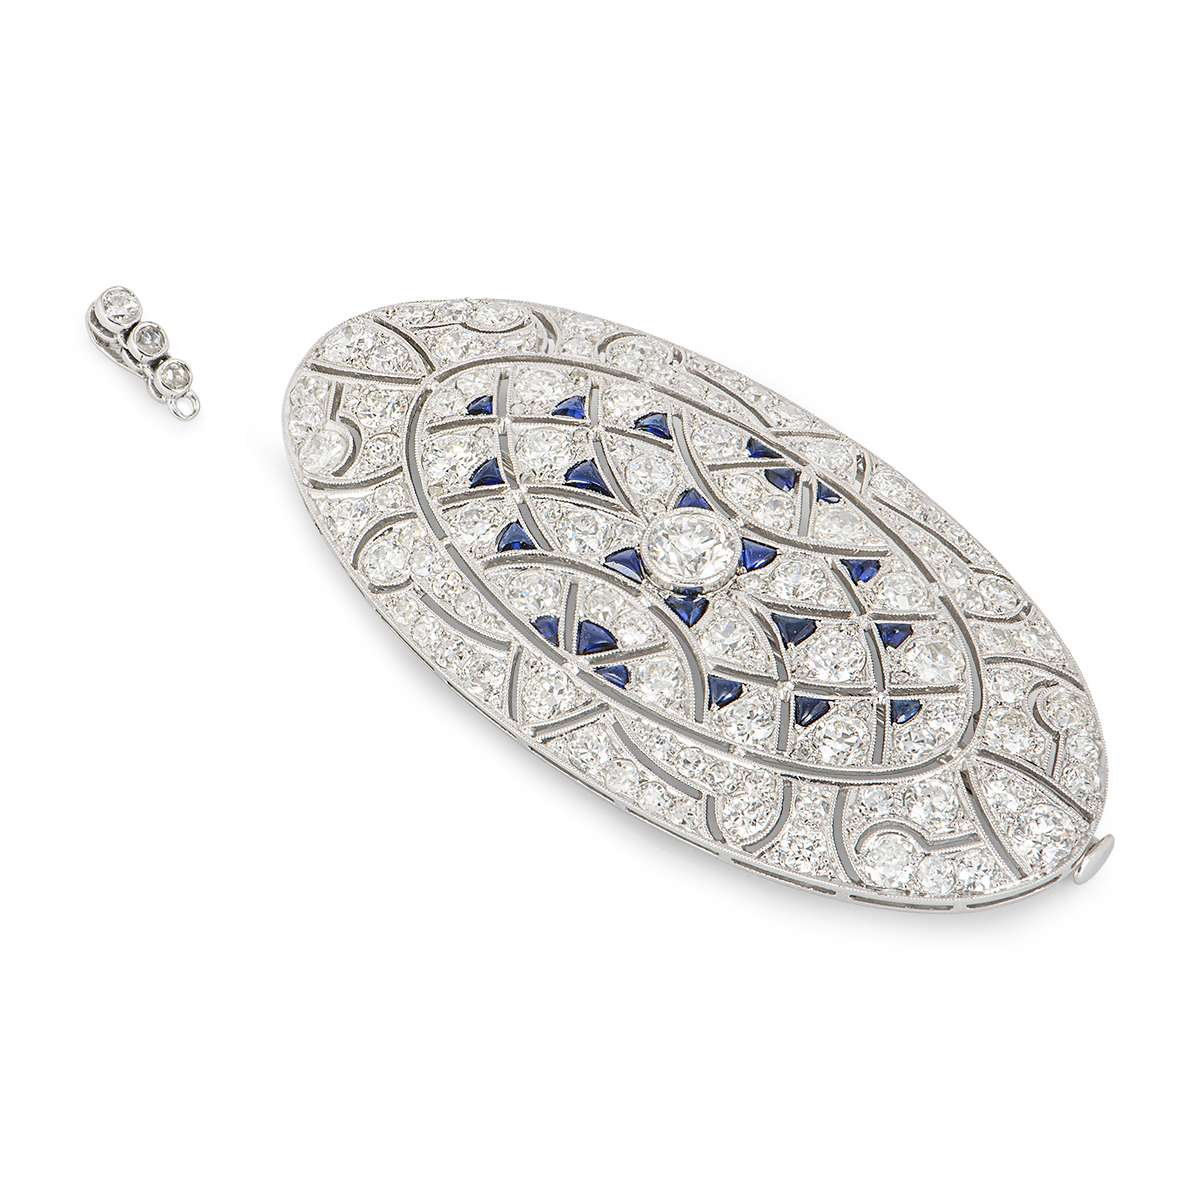 A Diamond & Sapphire Belle Époque Pendant Brooch in Platinum C.1910